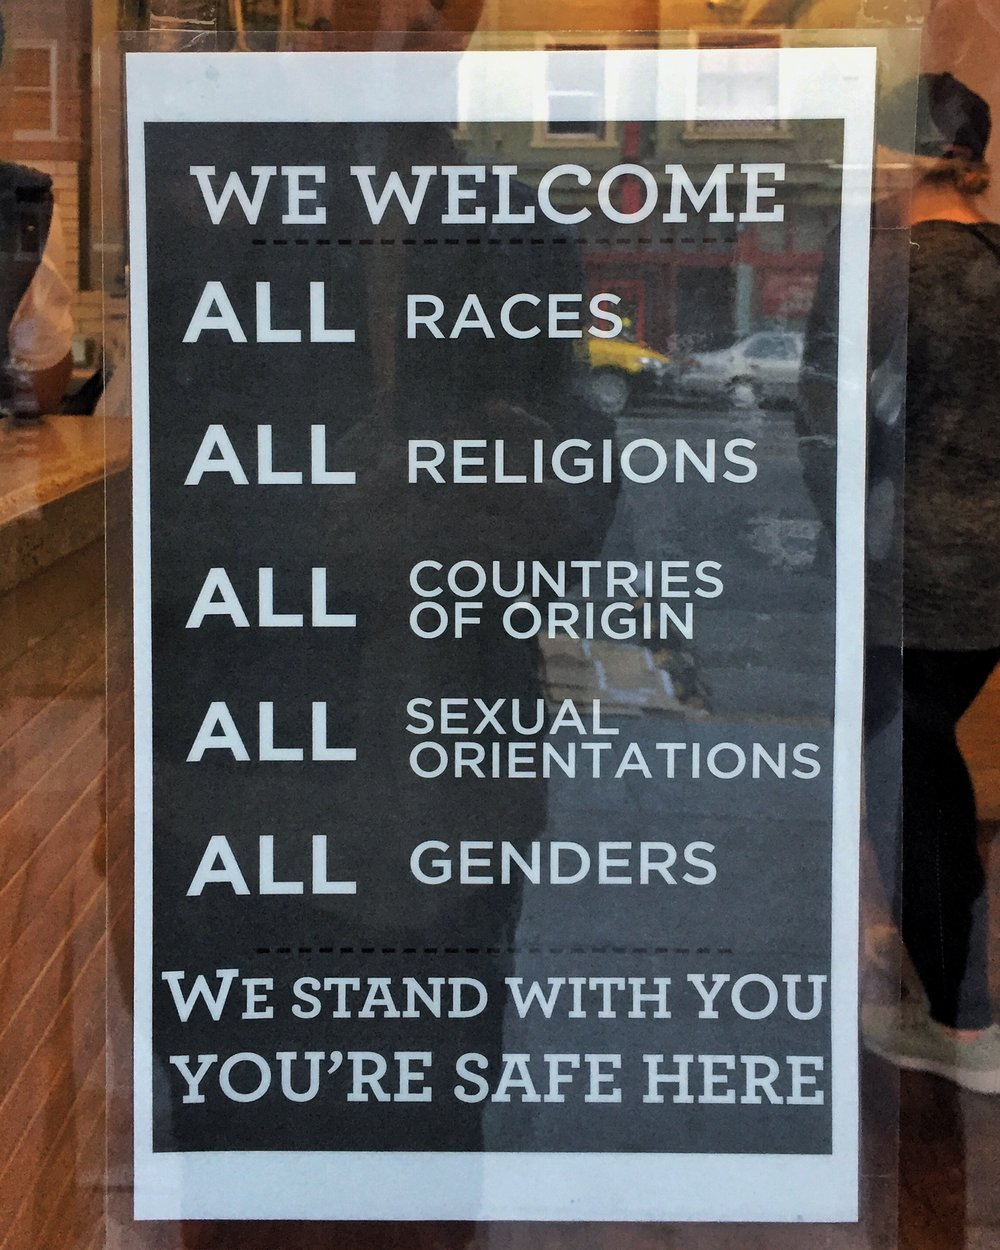 It's sad to see that people with disabilities were not included, but signs like this one we found in San Francisco are heading in the right direction.